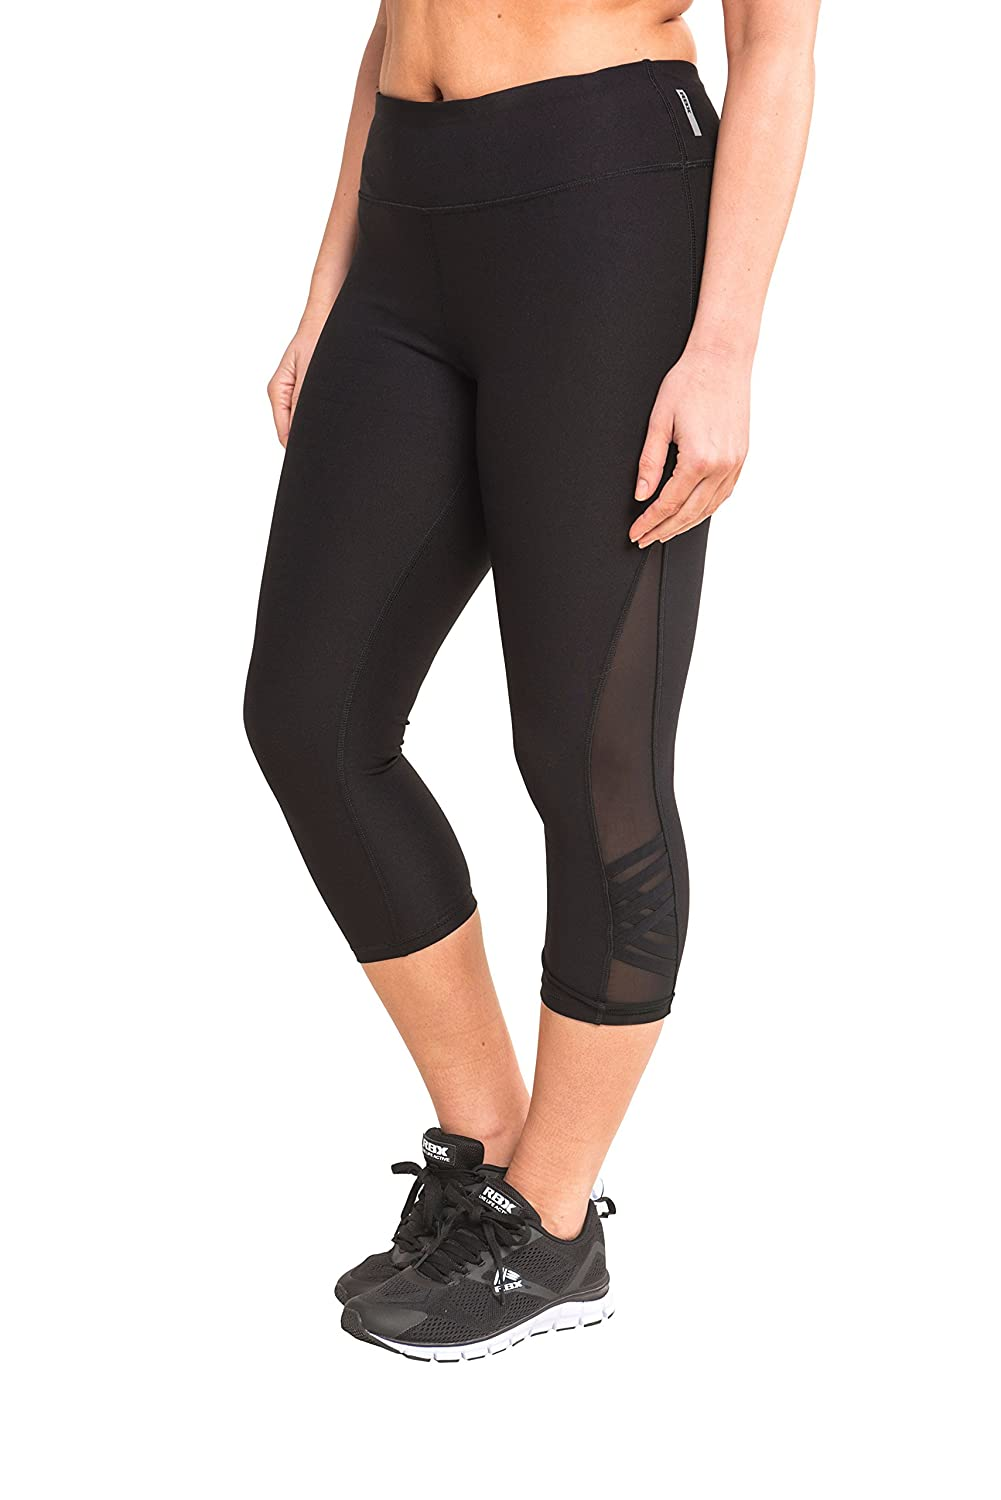 69f8401ff3f800 Flat-lock stitching to reduce irritation caused by chafing. Fade-resistant  striated print for a unique and durable look. Stretch jersey fabric allows  for a ...